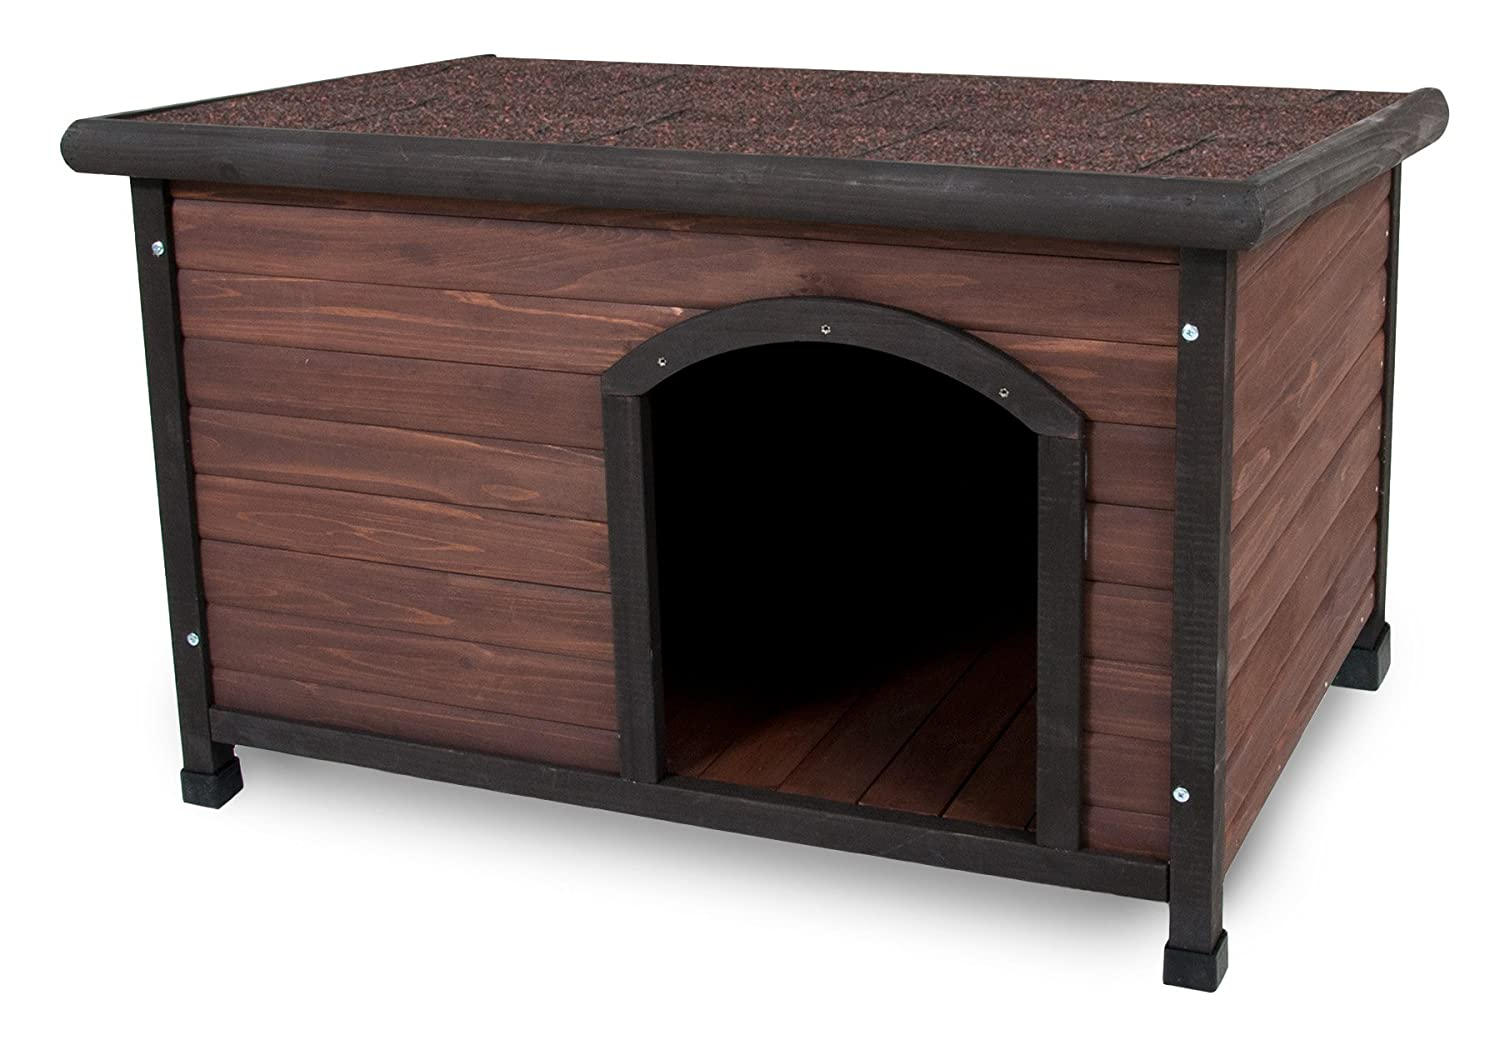 Amazon.com  Aspen Pet Ruff Hauz Off Set Door Dog House 25 to 50-Pound  Dog Pens Kennels Cat Pens Inclosures  Pet Supplies  sc 1 st  Amazon.com & Amazon.com : Aspen Pet Ruff Hauz Off Set Door Dog House 25 to 50 ...